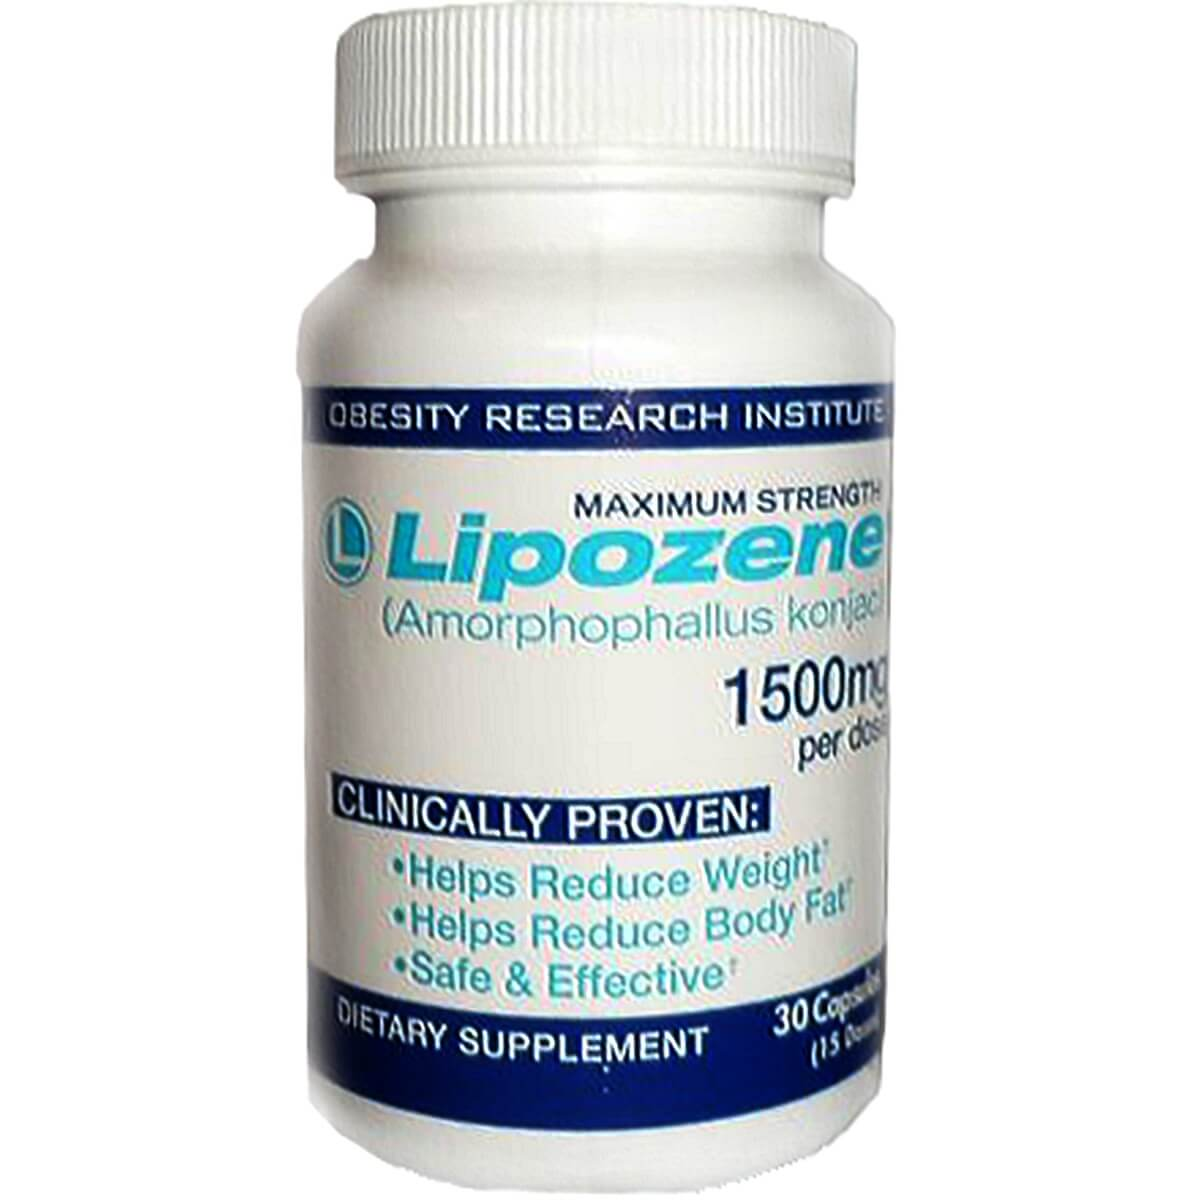 Lipozene Diet Pill Review